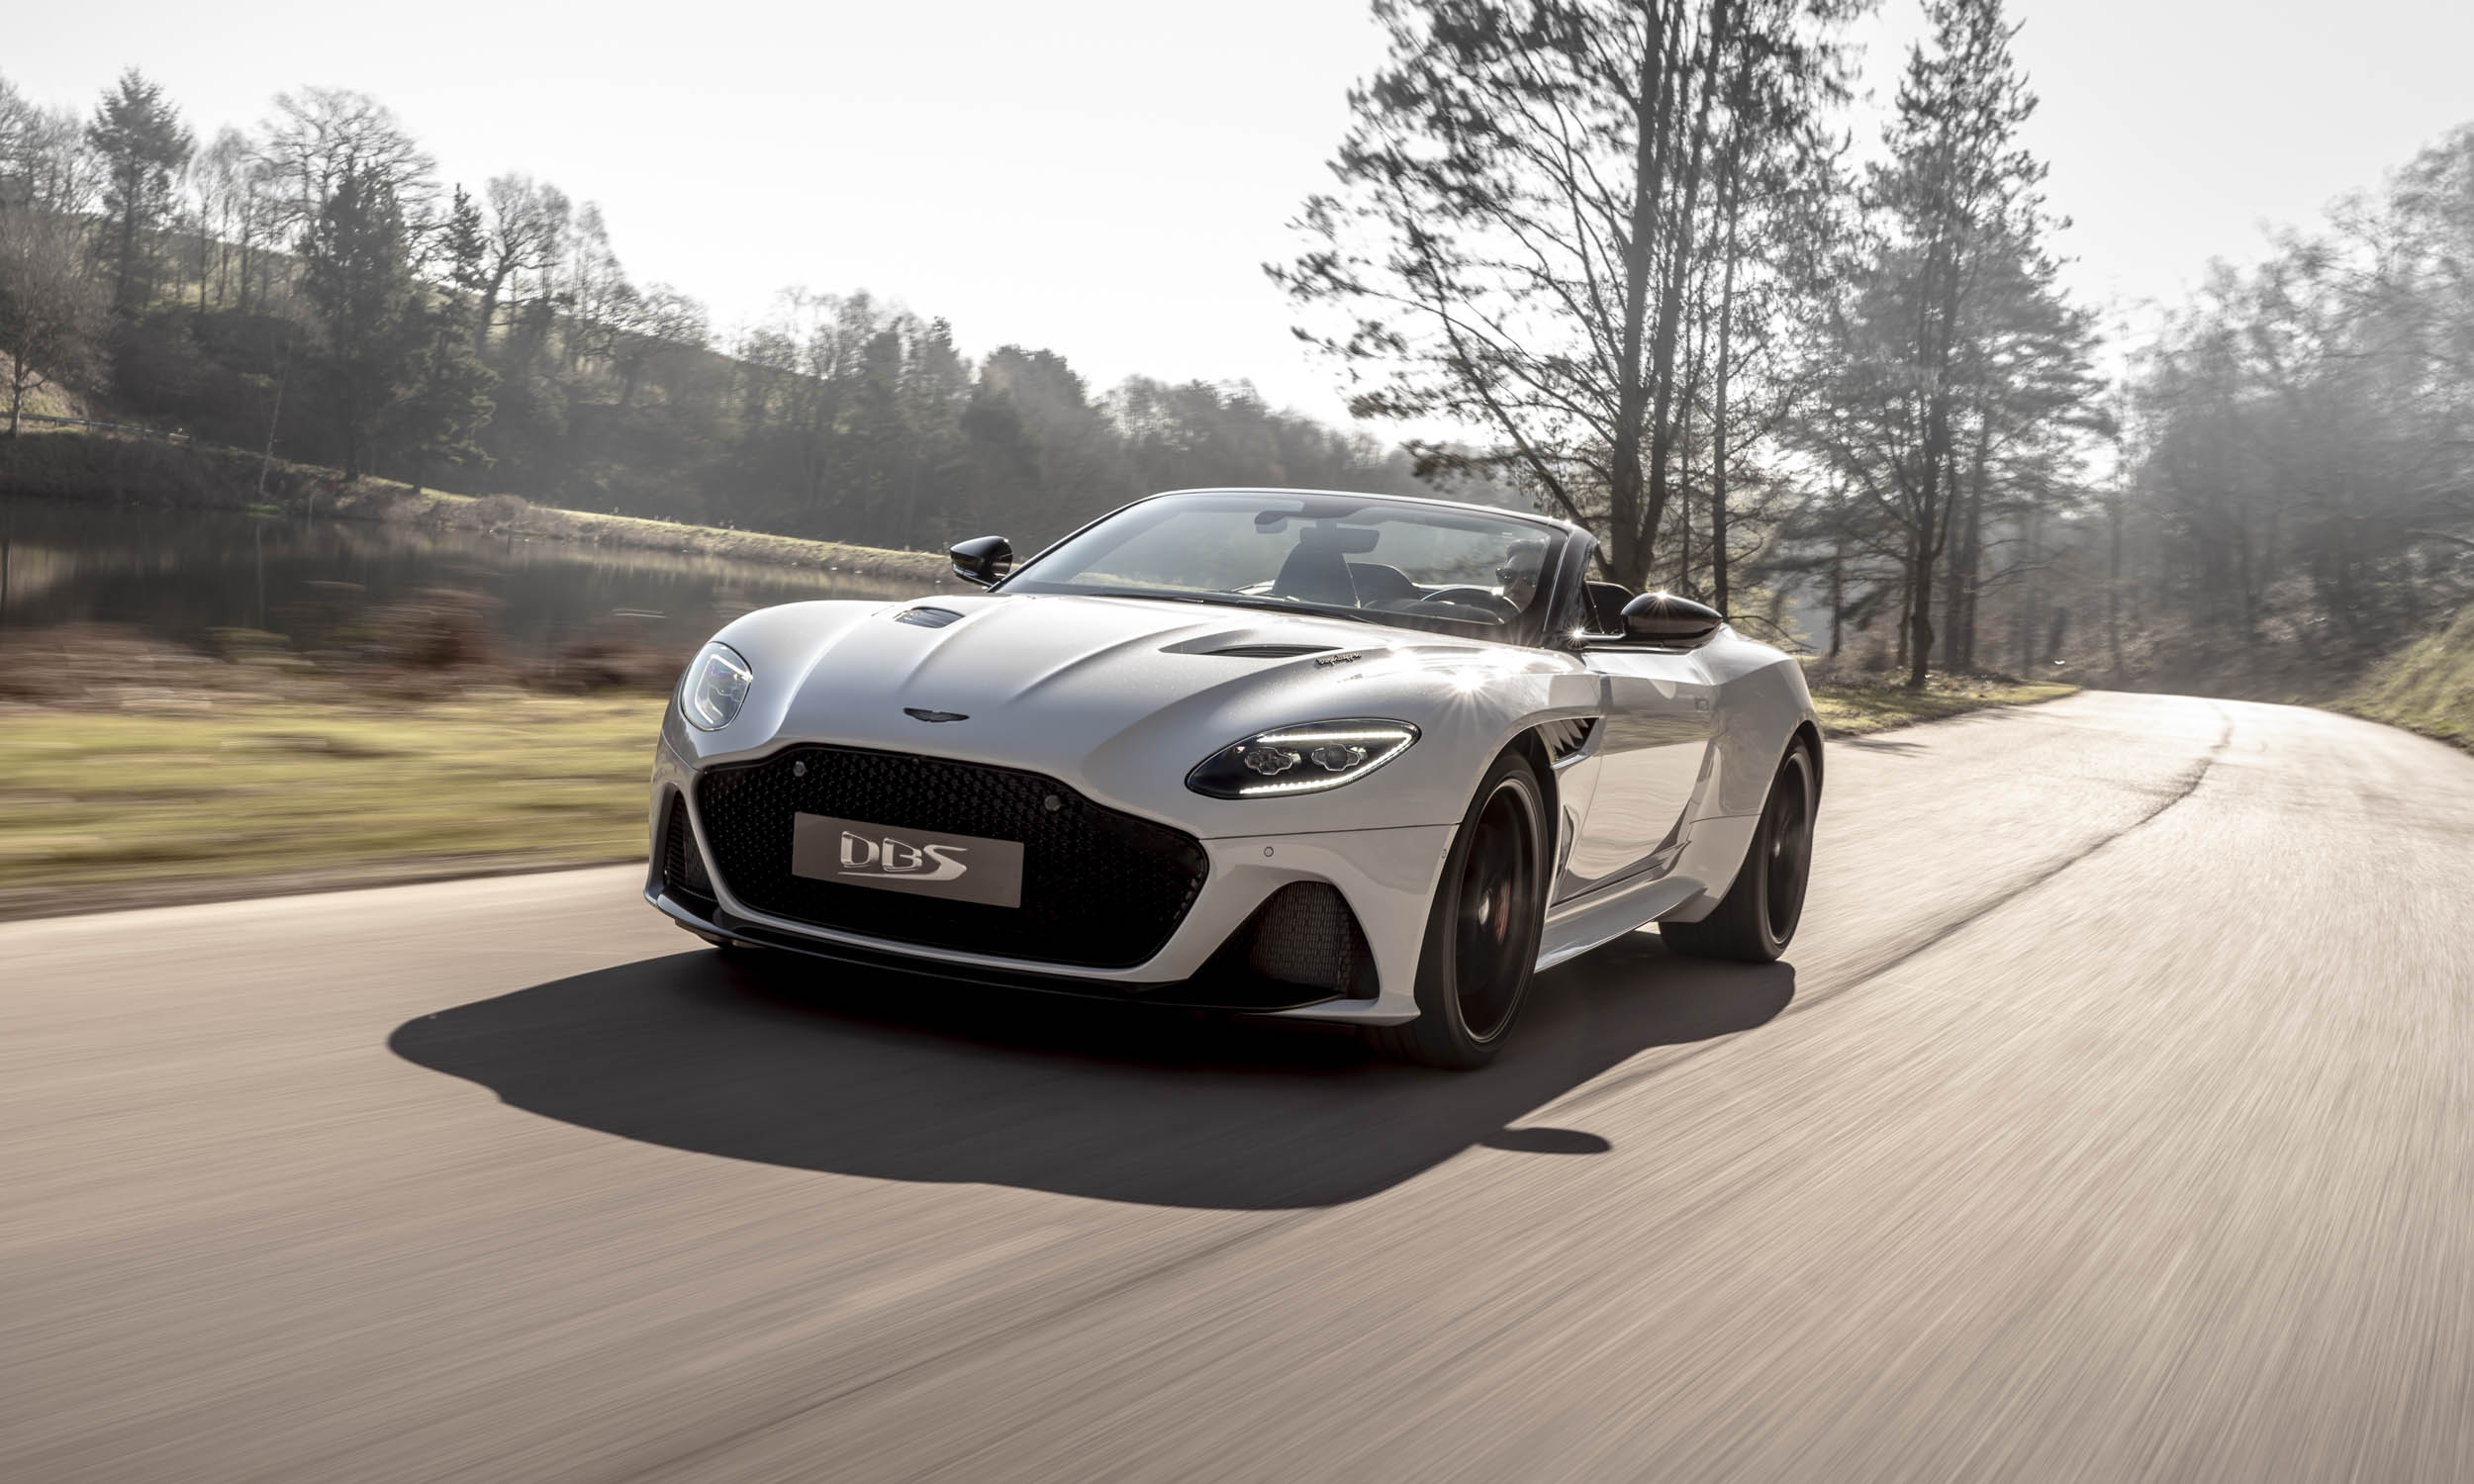 Aston Martin DBS Superleggera Volante: First Look